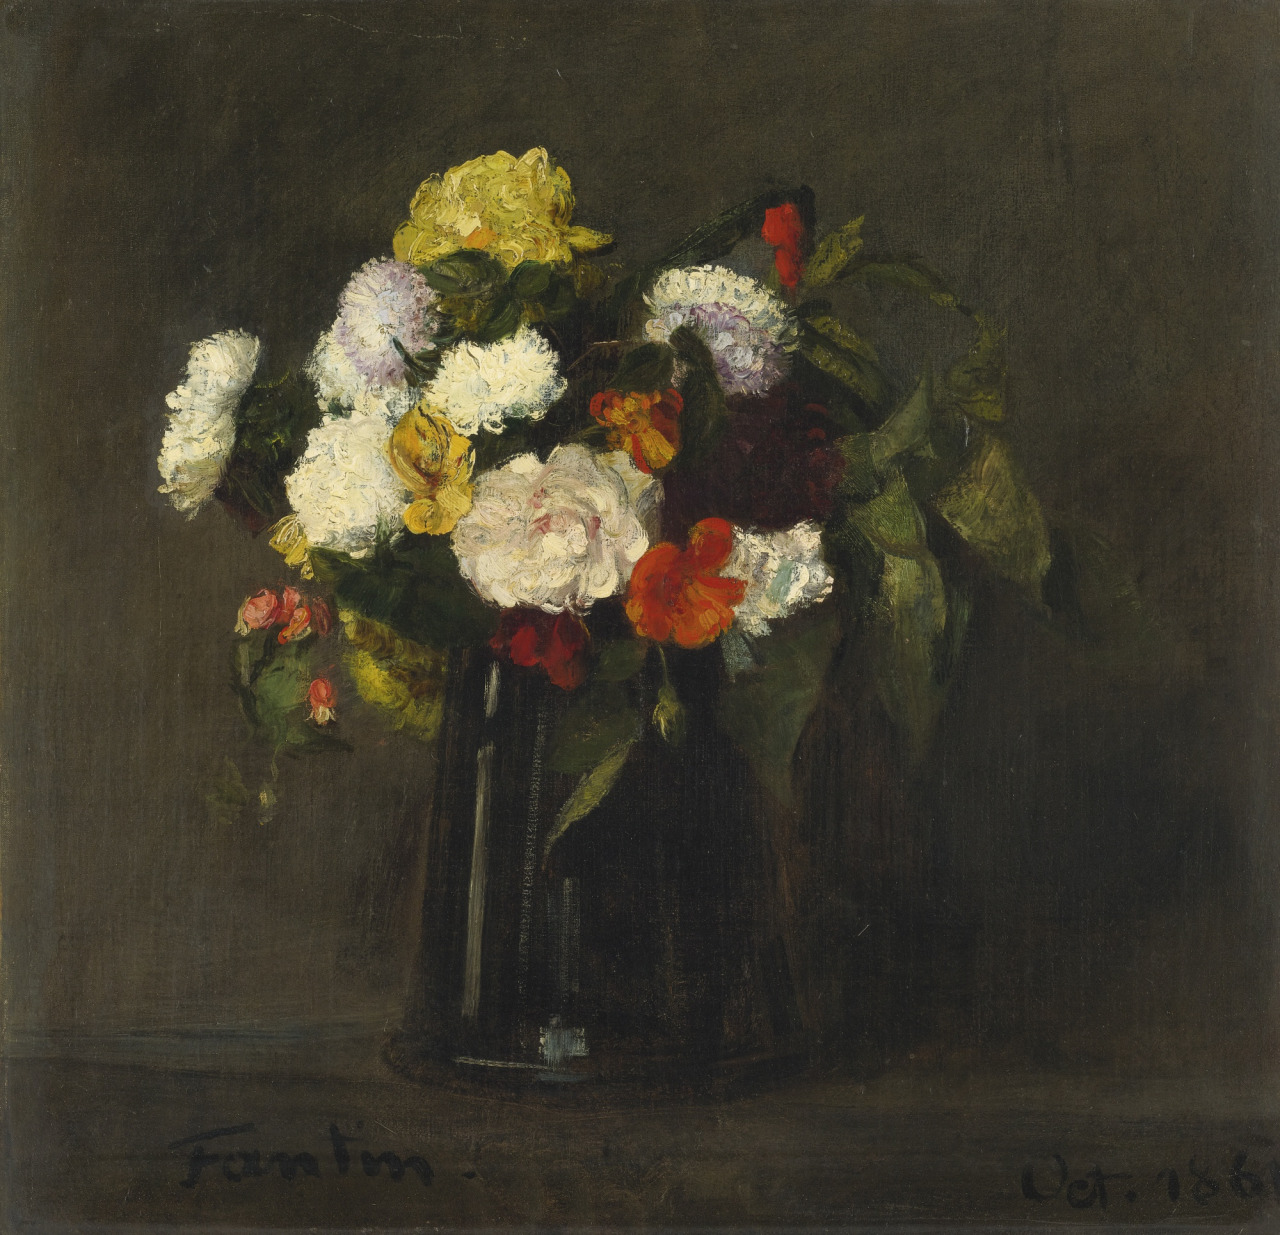 Flowers, by Henri Fantin-Latour, 1861